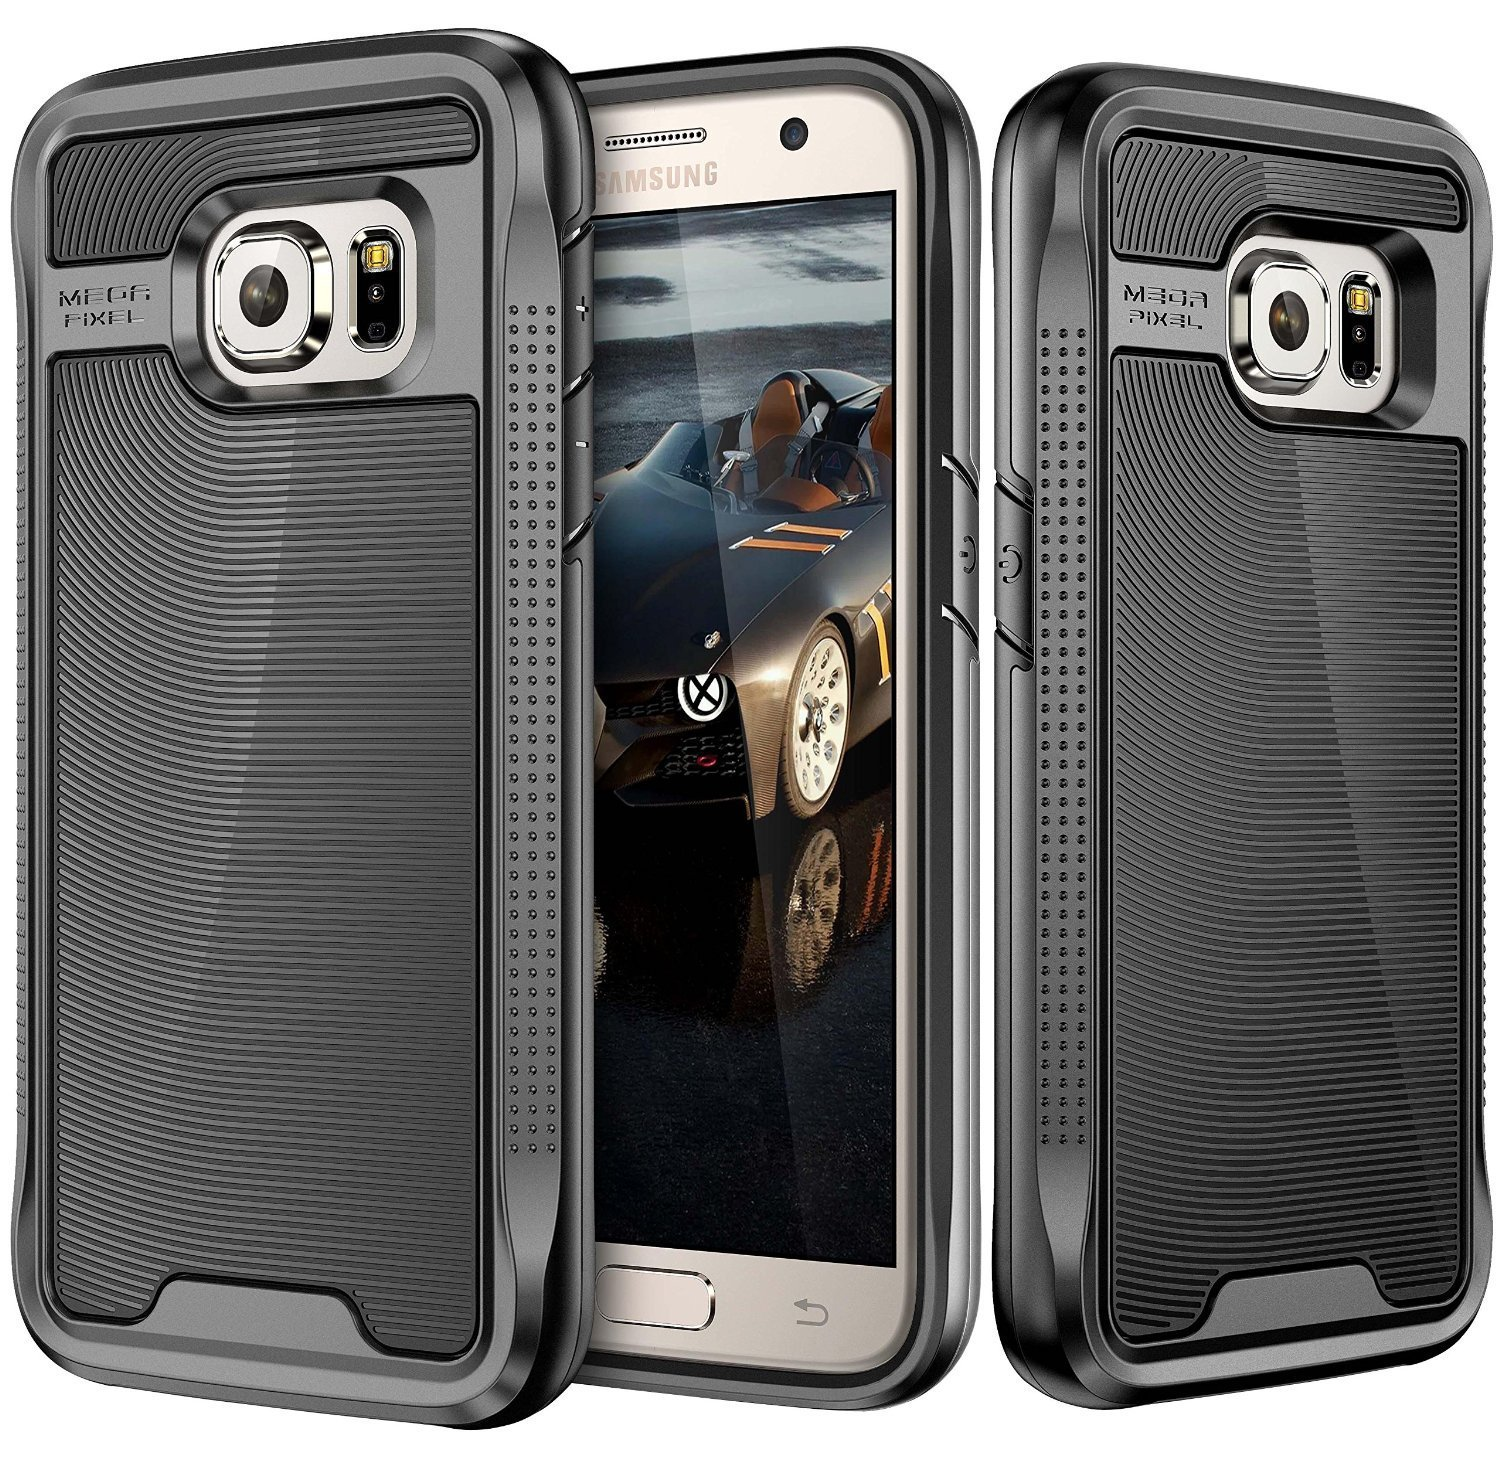 Galaxy S7 Case, E LV Galaxy S7 - Hybrid [Scratch/Dust Proof] Armor Defender Slim Shock-Absorption Bumper Case for Samsung Galaxy S7 - [BLACK/ROSE GOLD]